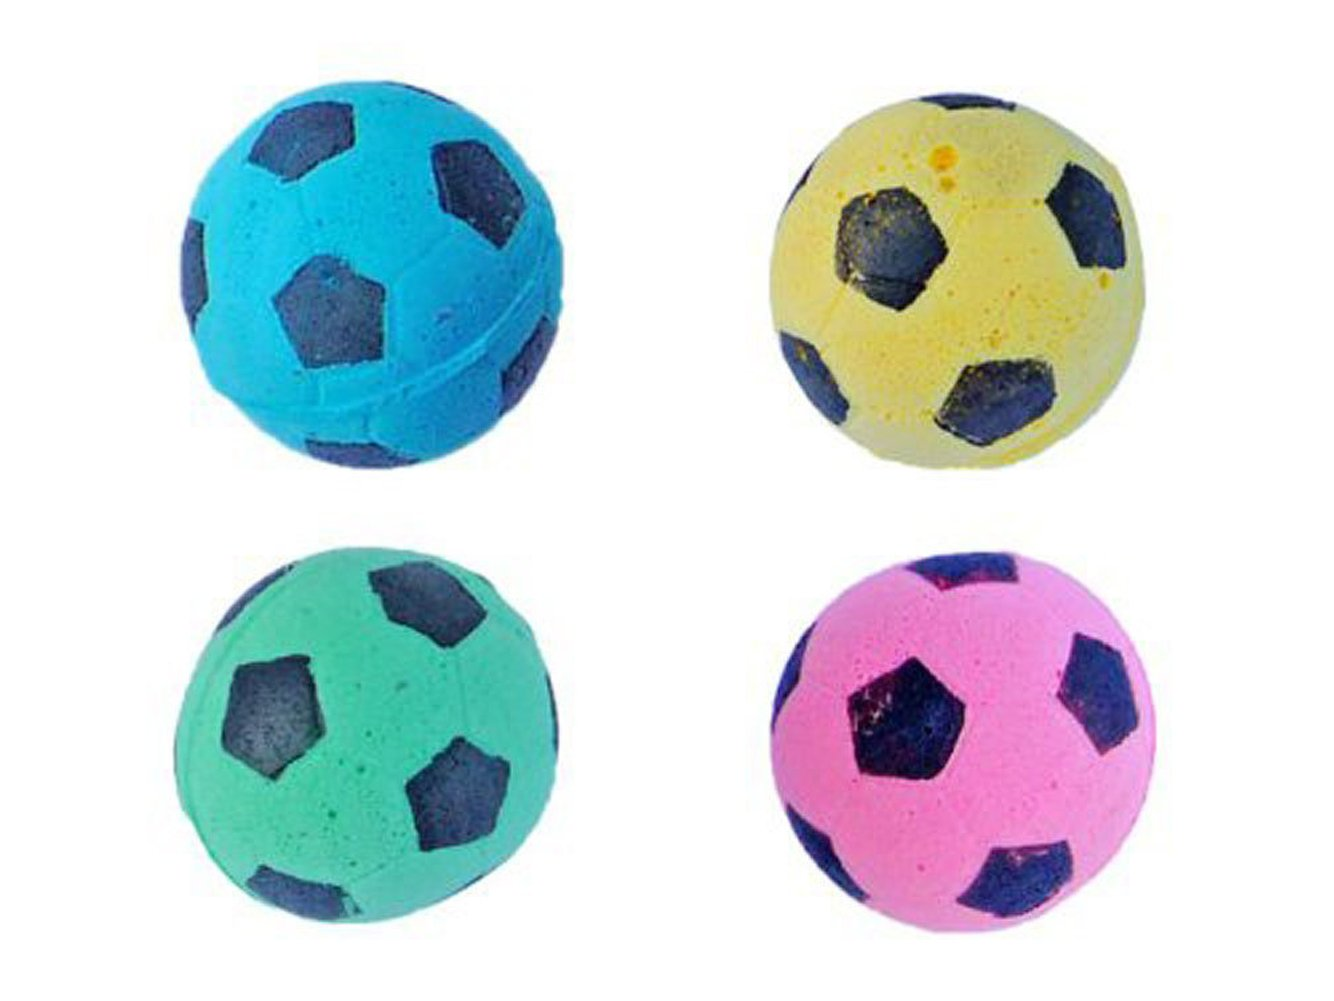 PetFavorites trade; Foam/Sponge Soccer Ball Cat Toy Best Interactive Cat Toys Ever Most Popular Independent Pet Kitten Cat Exrecise Toy balls for Real Cats Kittens, Soft/Bouncy/Noise Free, 24 Pack. by PetFavorites (Image #1)